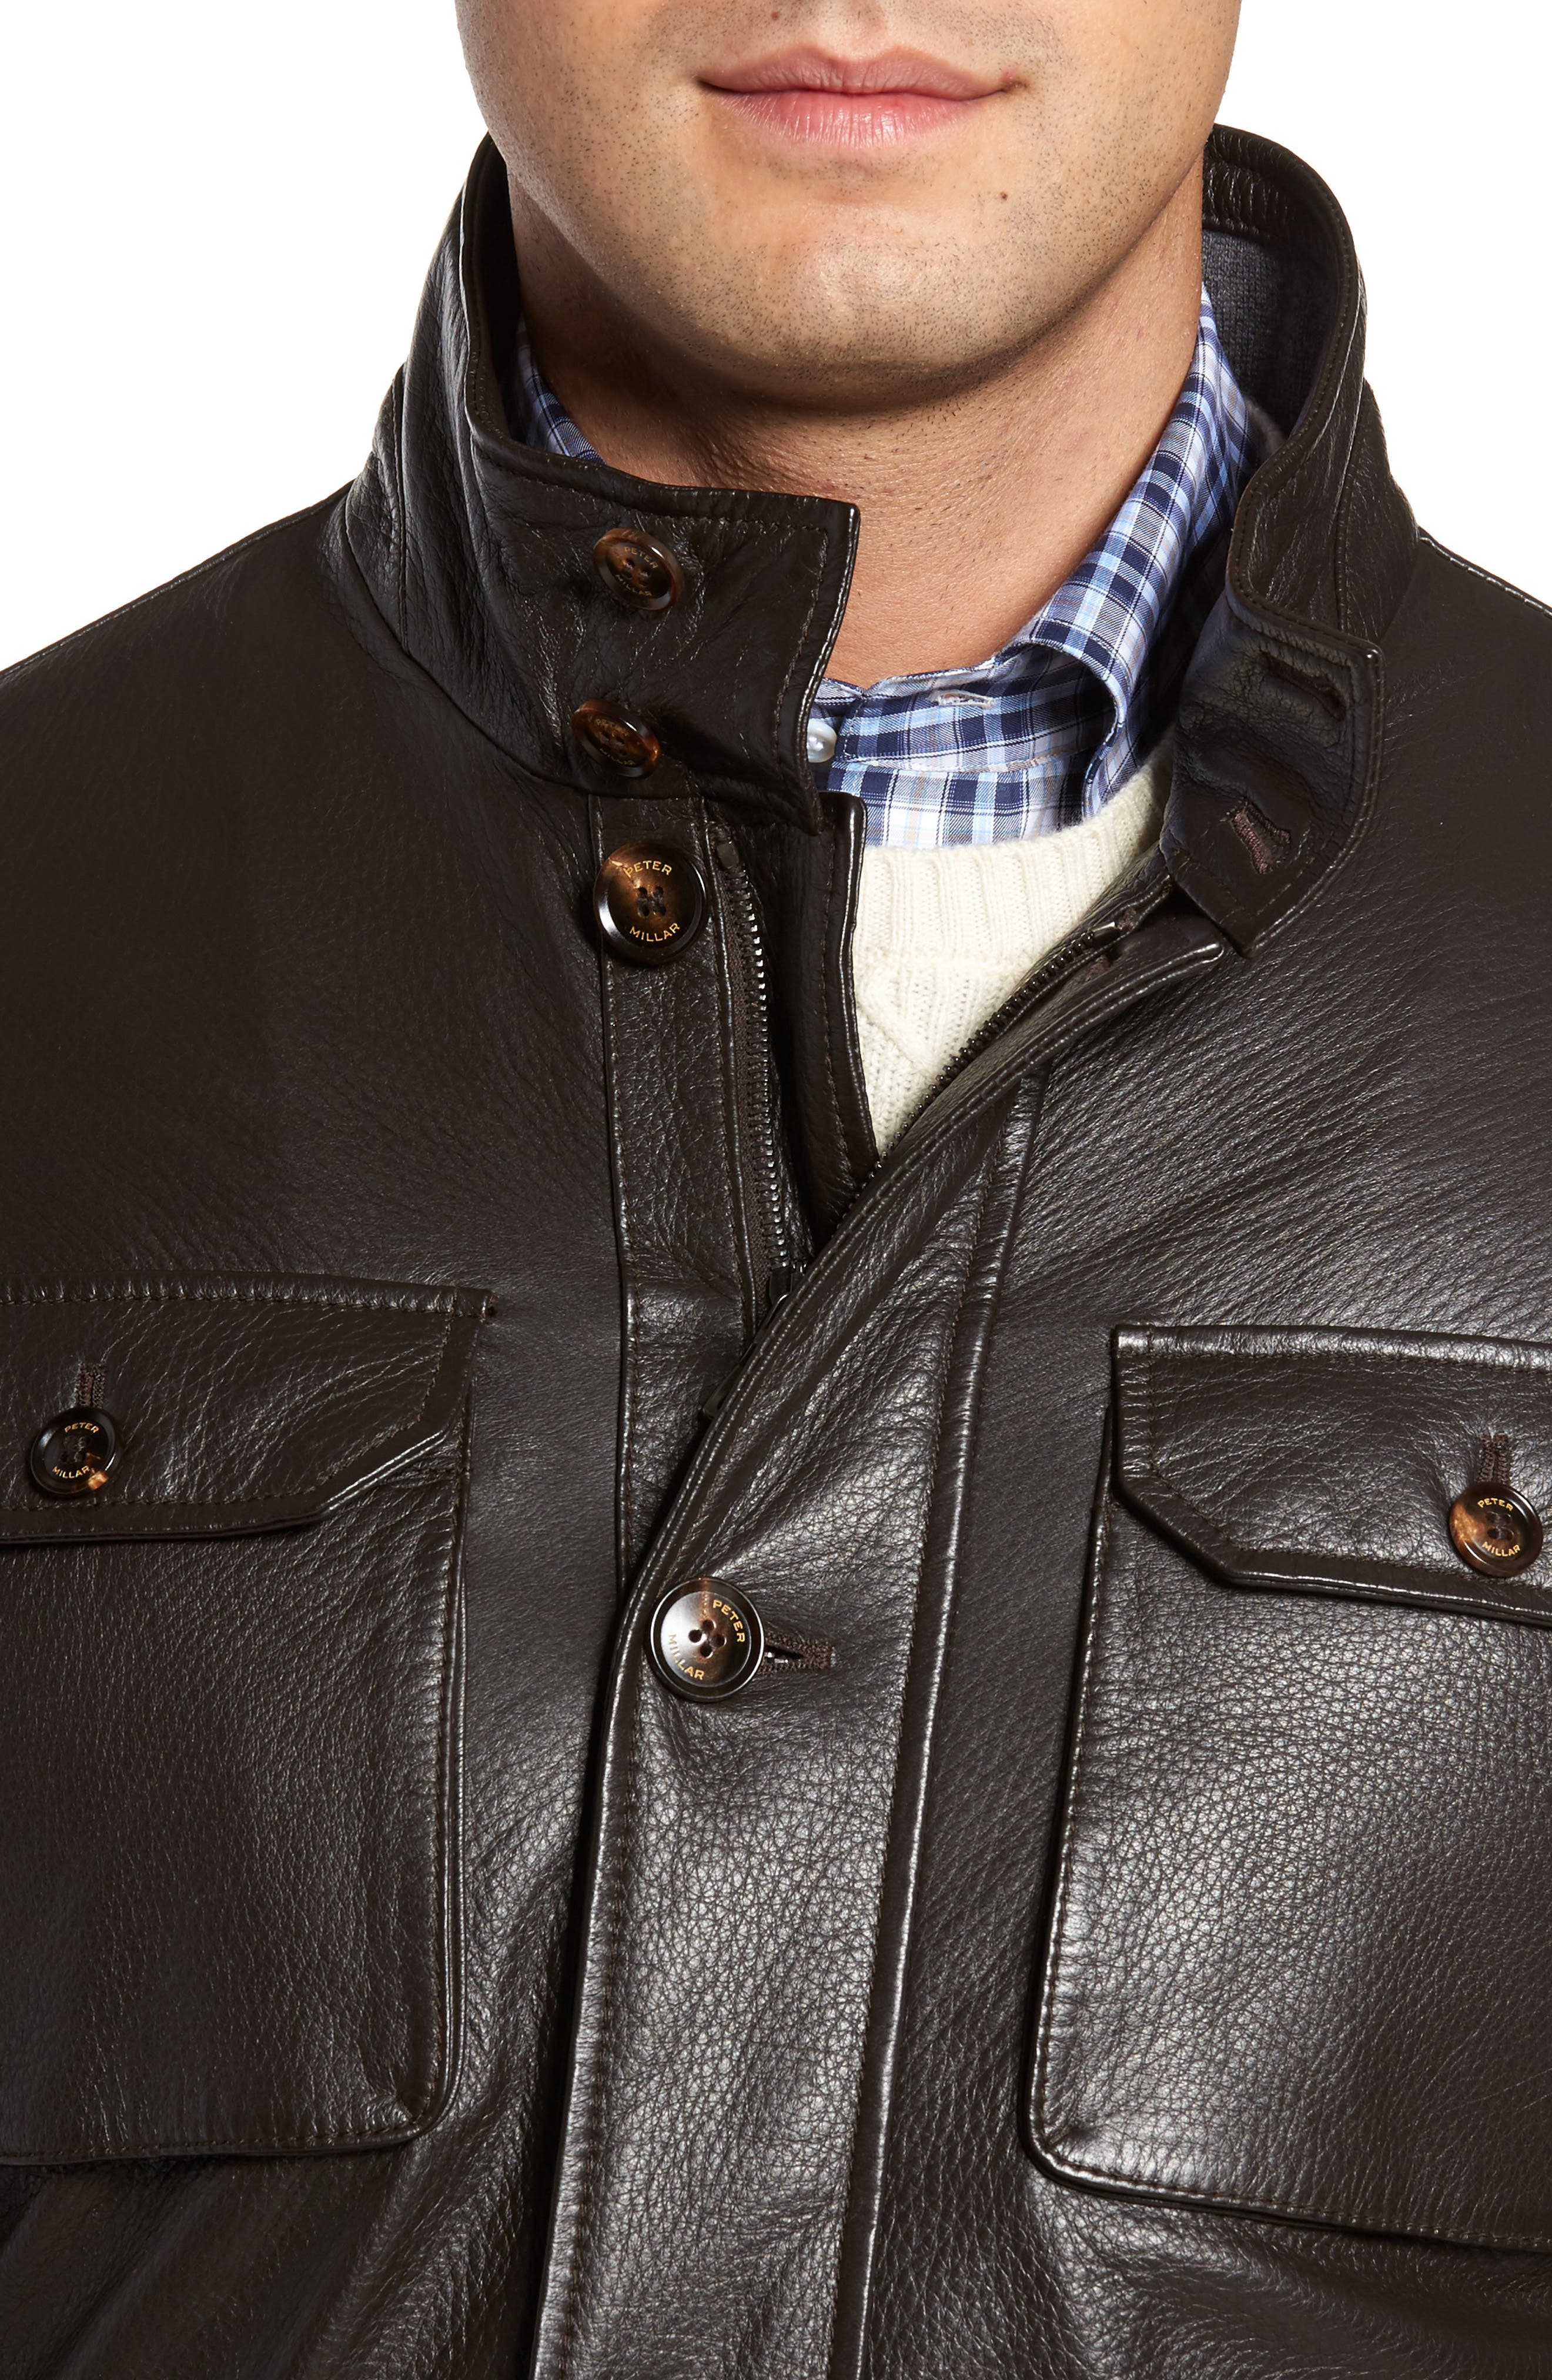 Woodland Discovery Deerskin Leather Jacket,                             Alternate thumbnail 4, color,                             Espresso